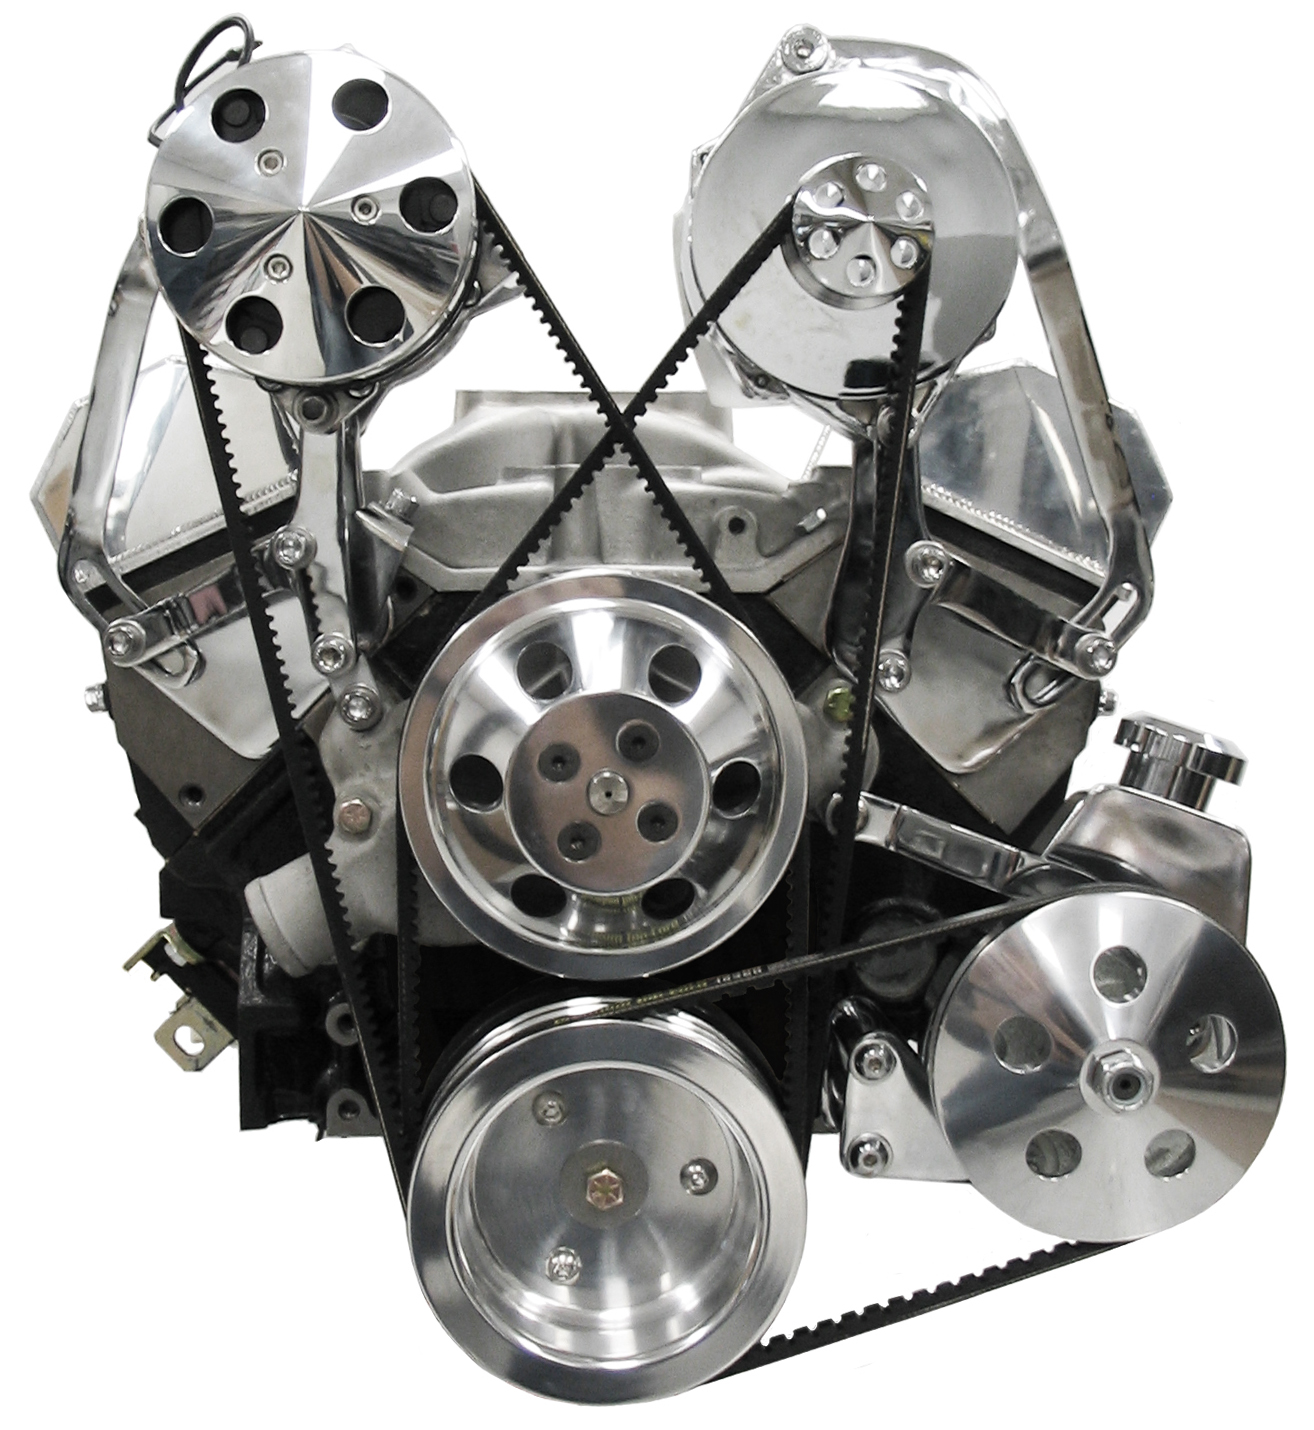 Southwest Speed Manufacturing Warehousing And Distributing Race 196567 Bb Power Steering Pump Corvette Parts Accessories These Custom Sws Chevy Kits Are Engineered To Bolt Right On Align Perfectly Without The Need For Stabilizer Brackets Or Adjuster Bars